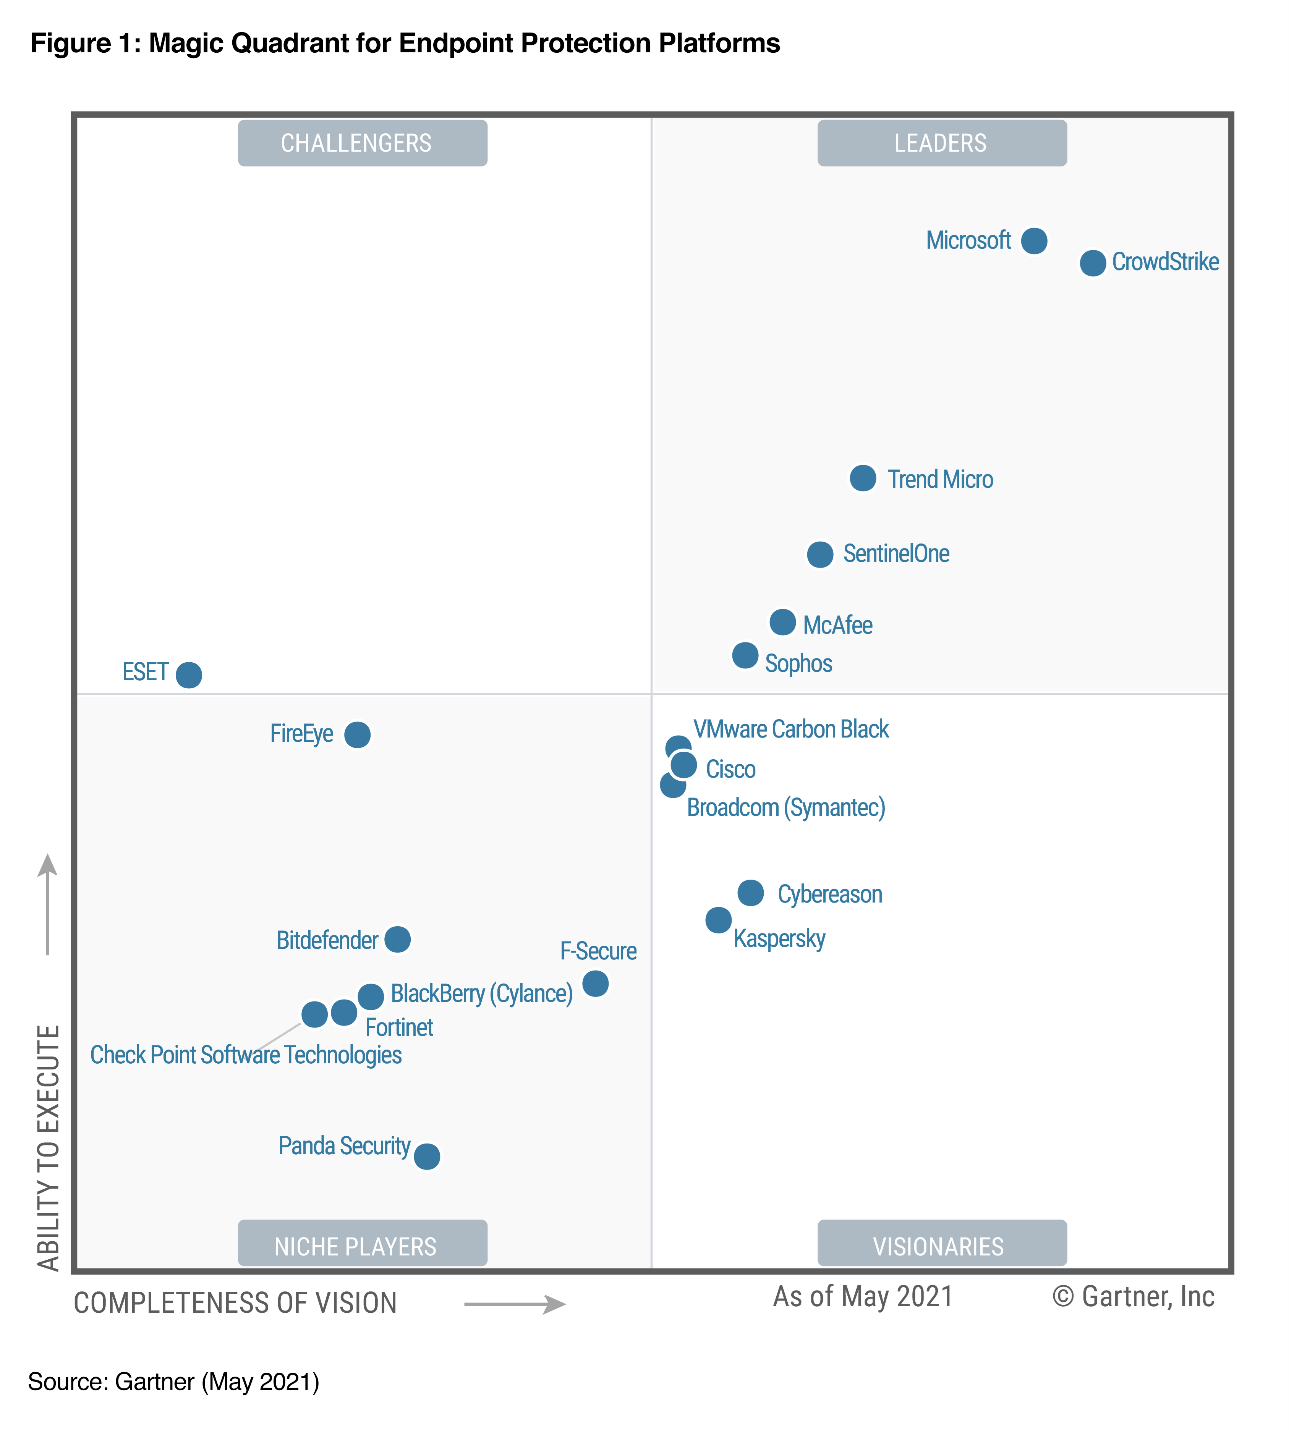 2021 Gartner Magic Quadrant for Endpoint Protection Platforms. Quadrants include Leaders, Challengers, Niche Players, and Visionaries.